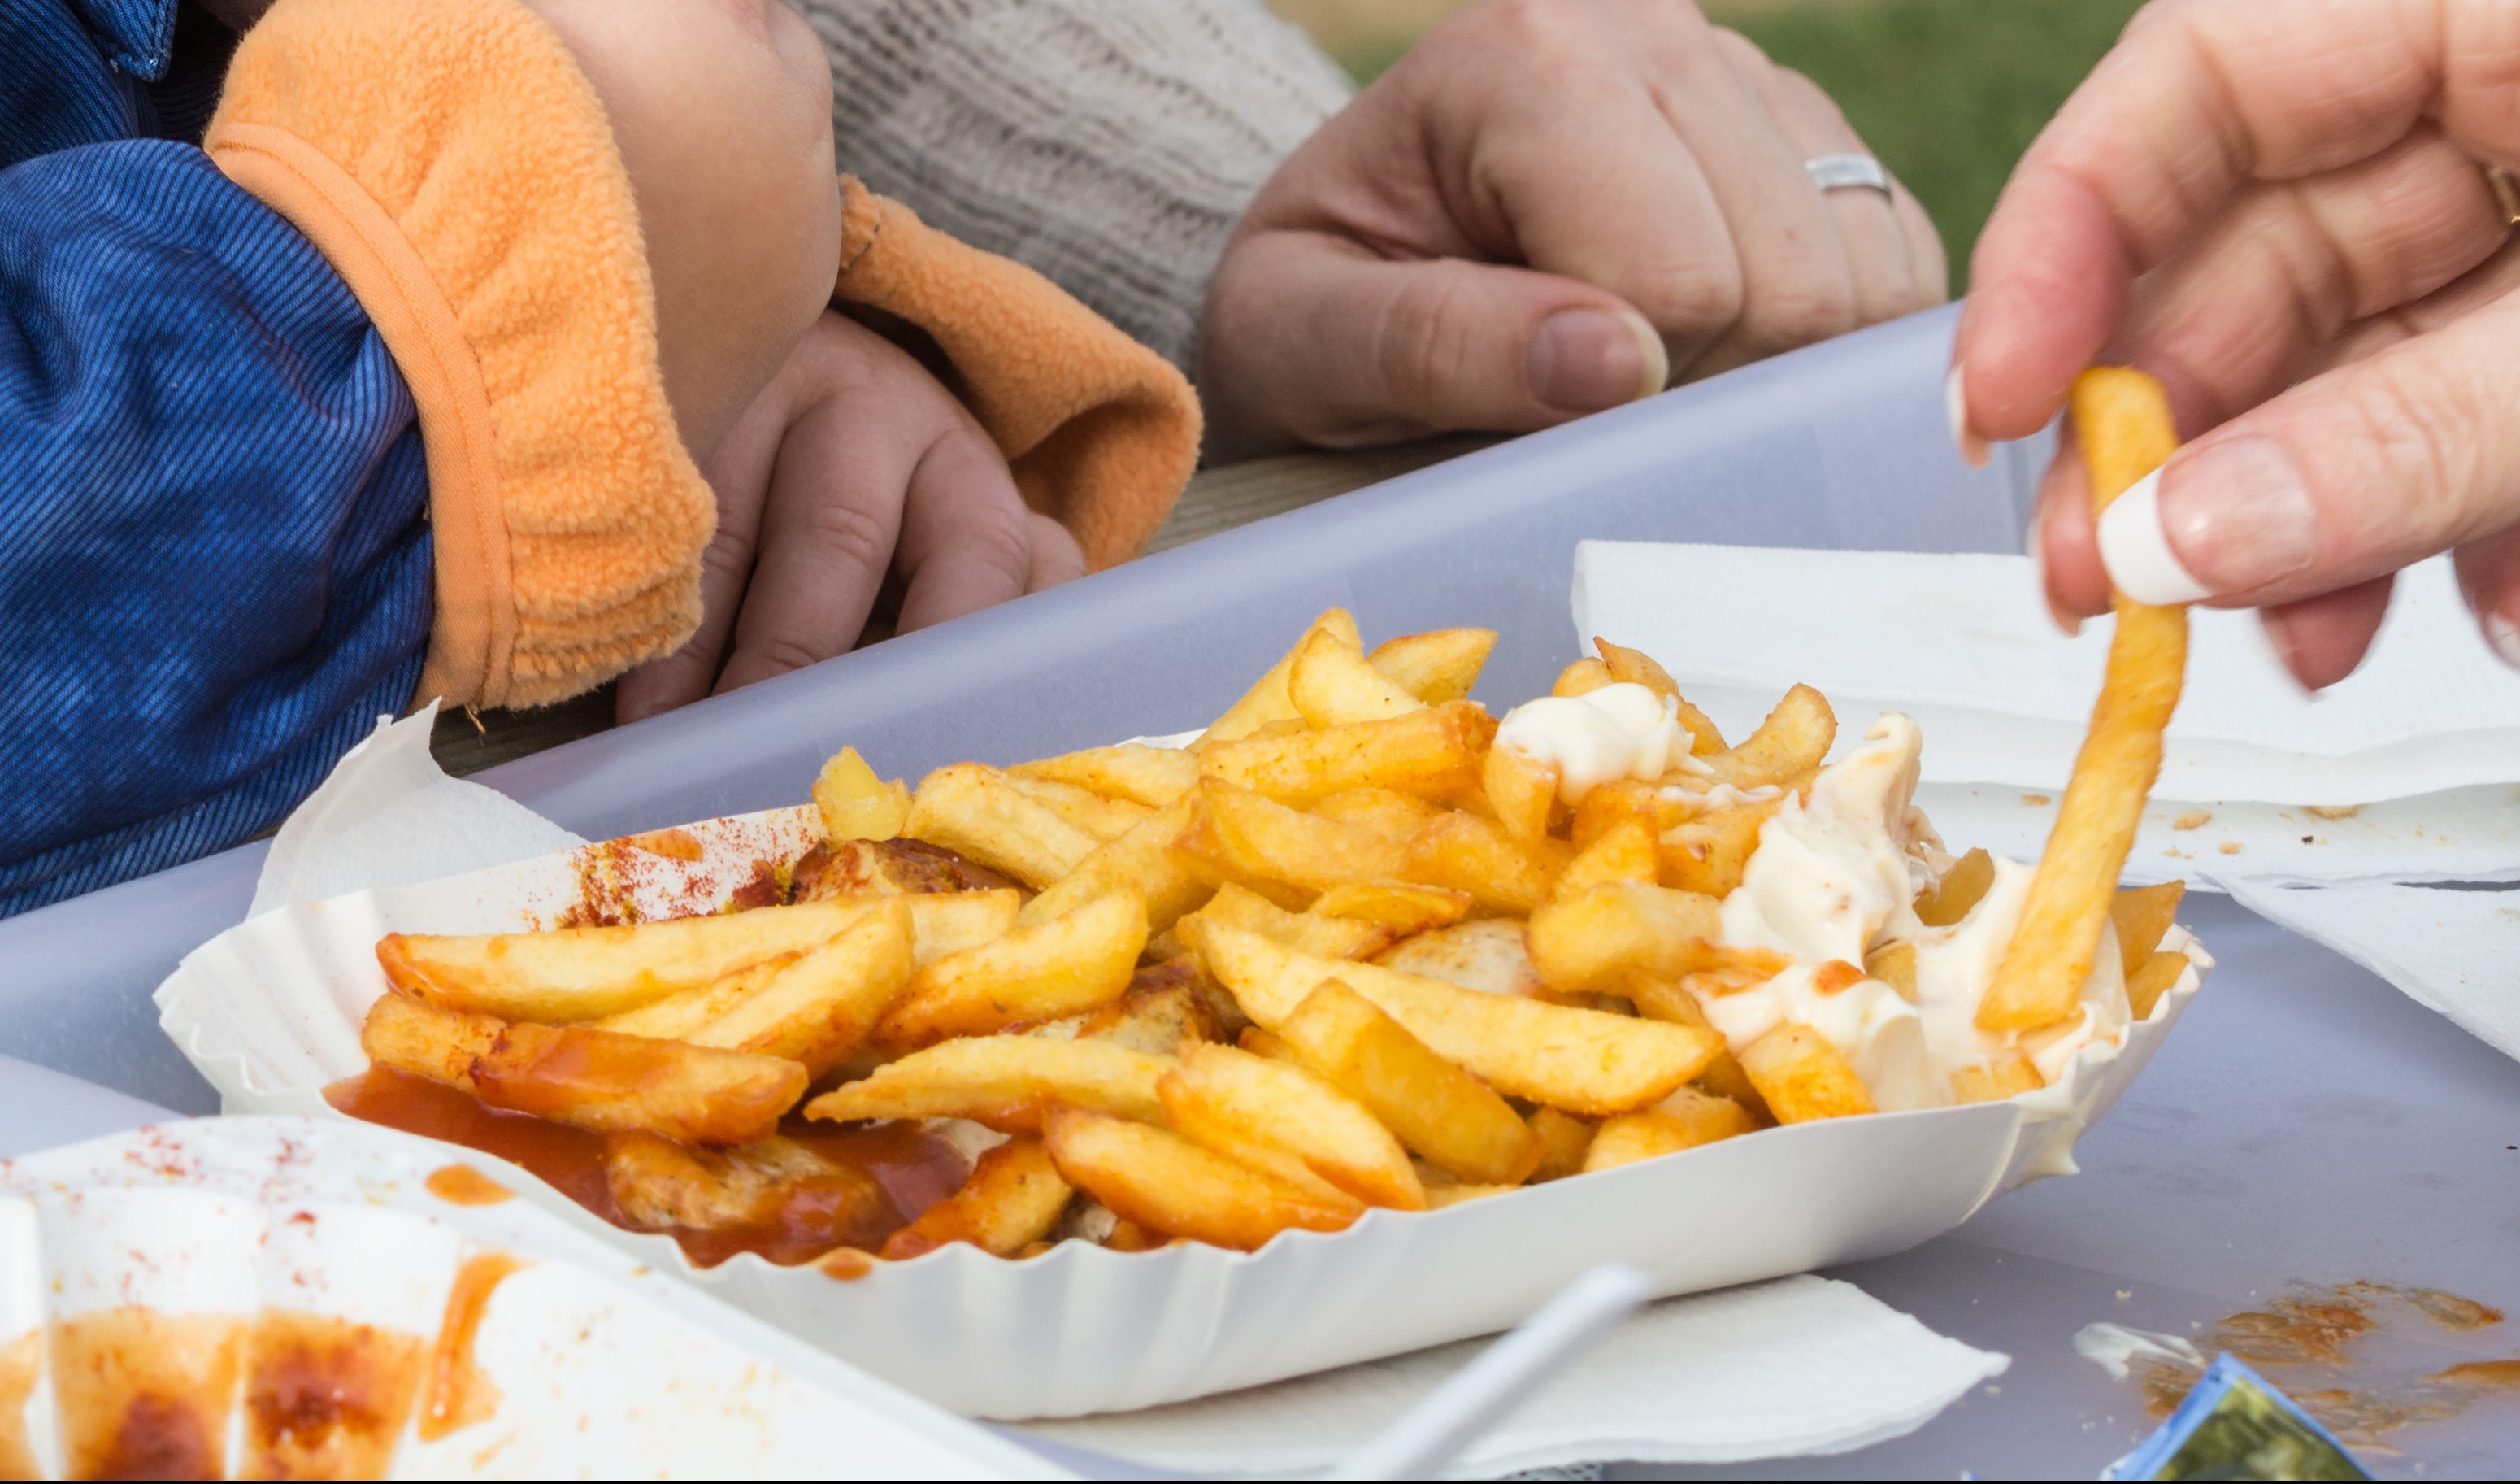 An NHS Health Scotland report found the obesity risk for children is widening (iStock)